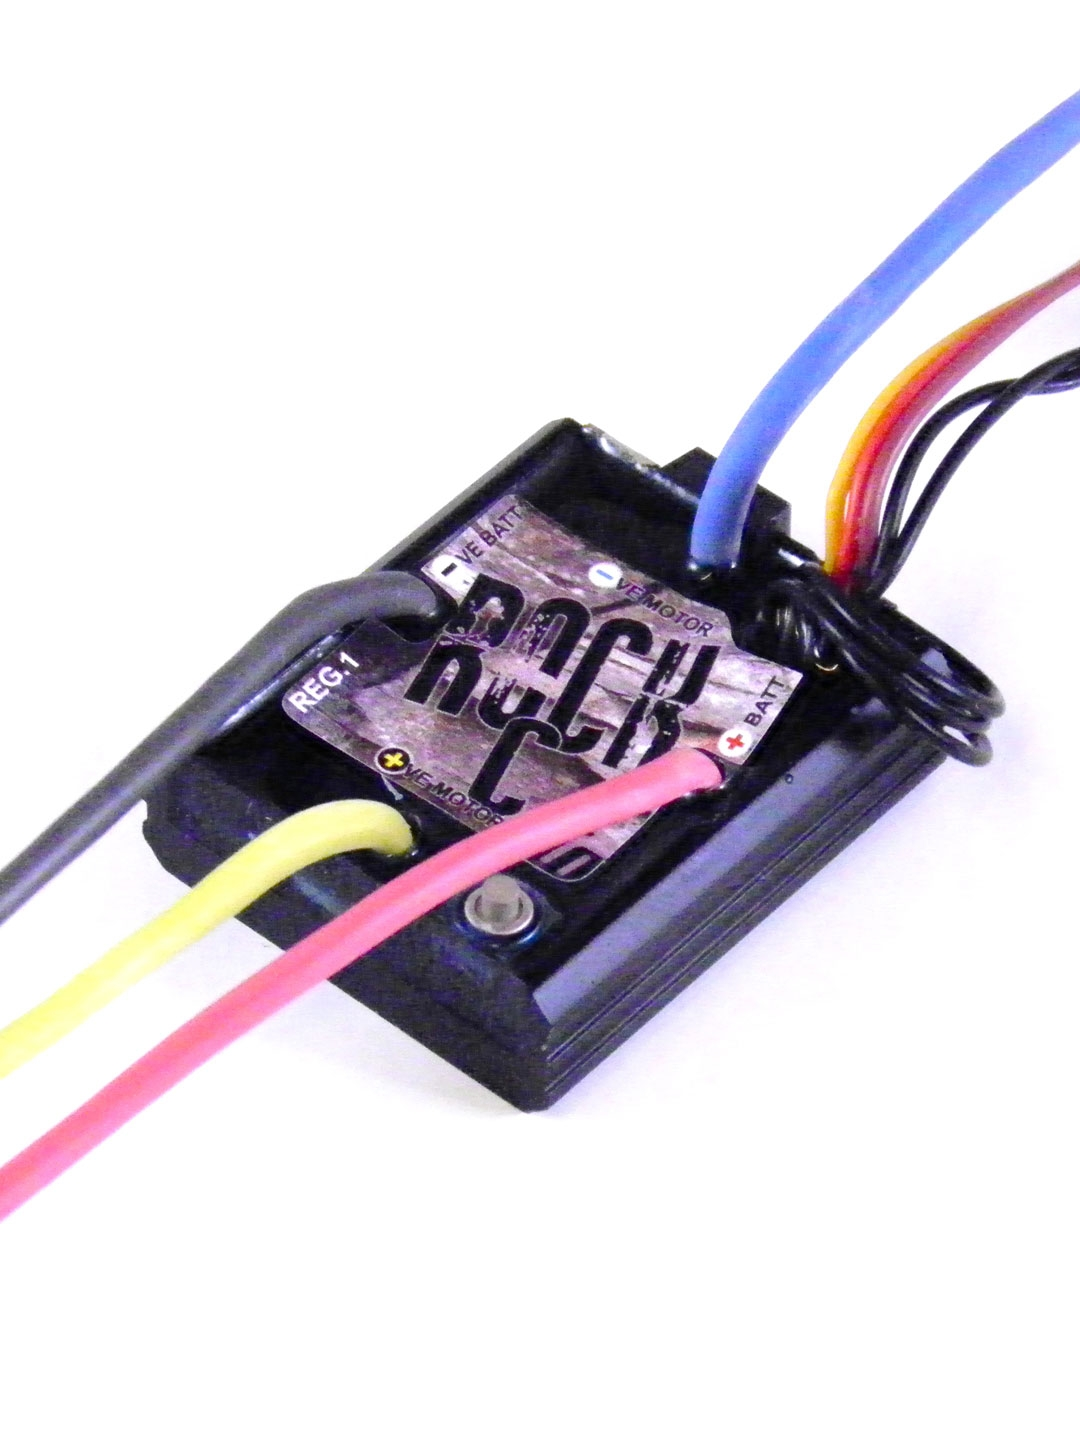 Cd4017 And Ne555 Timer Experiments additionally Simple Water Level Alarm Circuit likewise Smoke Detector Circuit additionally New Model Retractable Remote Control Orient 60347388920 likewise Schematic. on led hobby projects